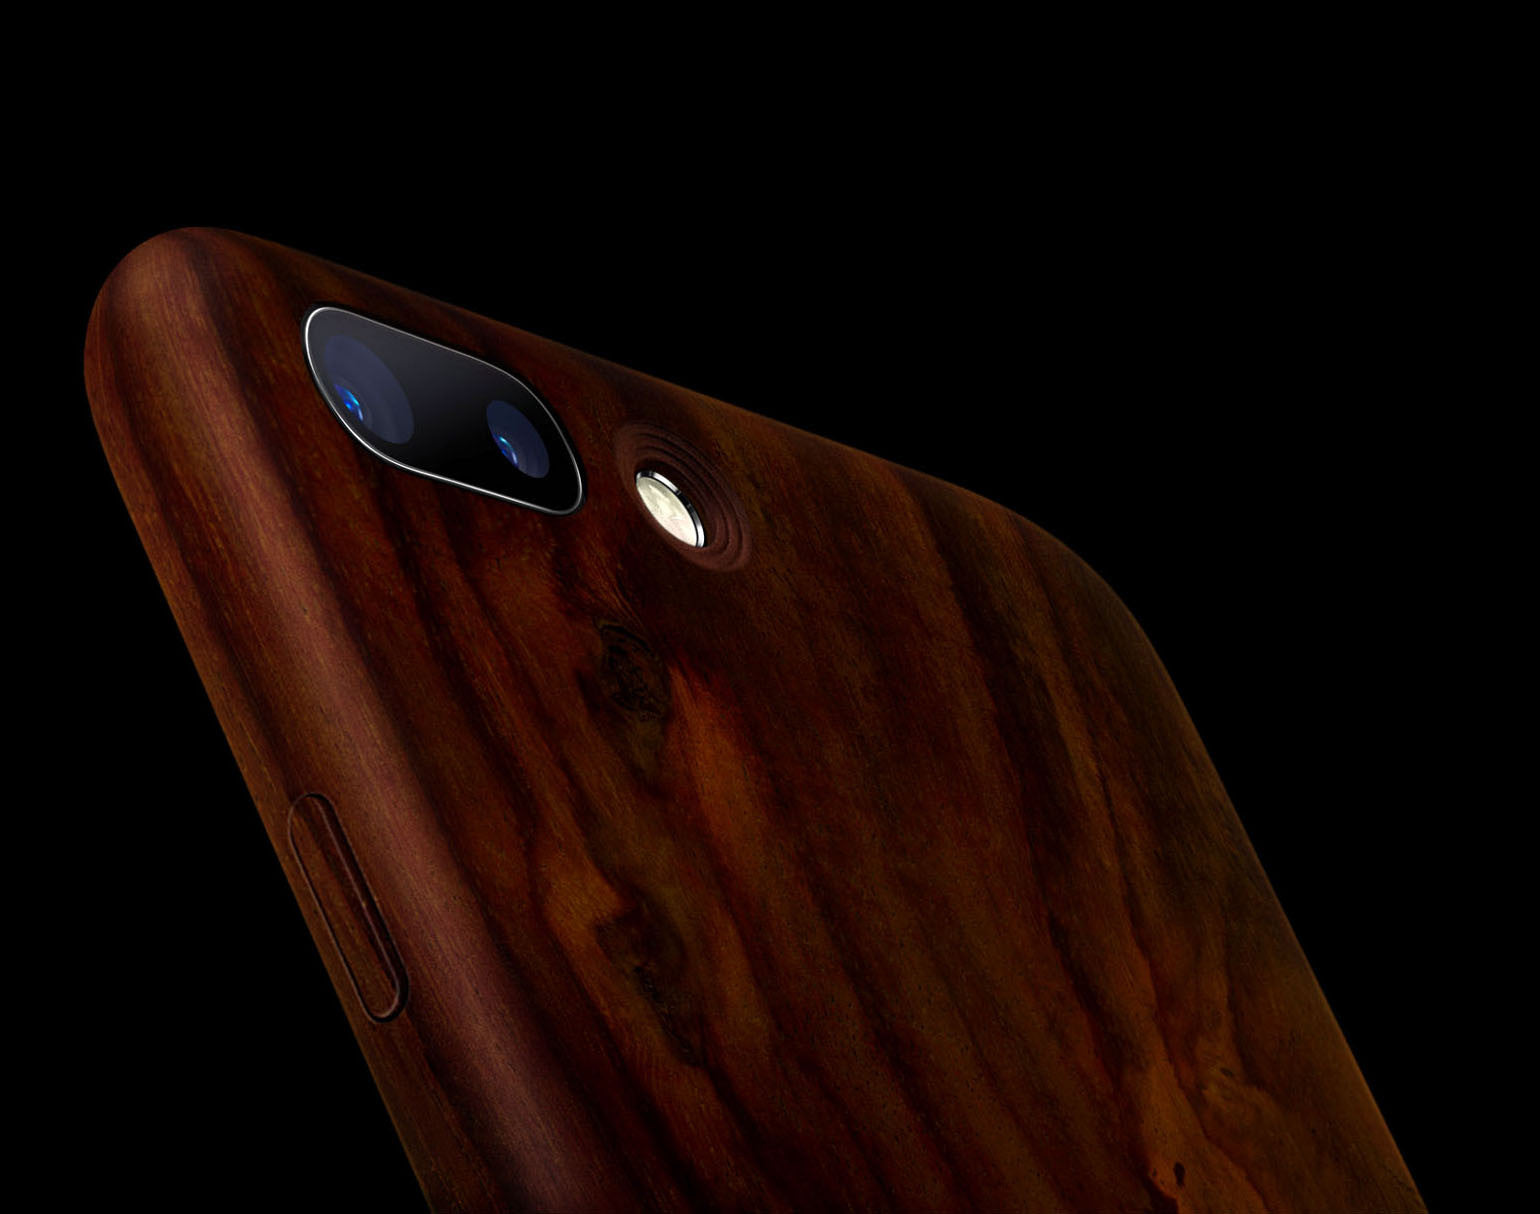 iWood 7 Plus